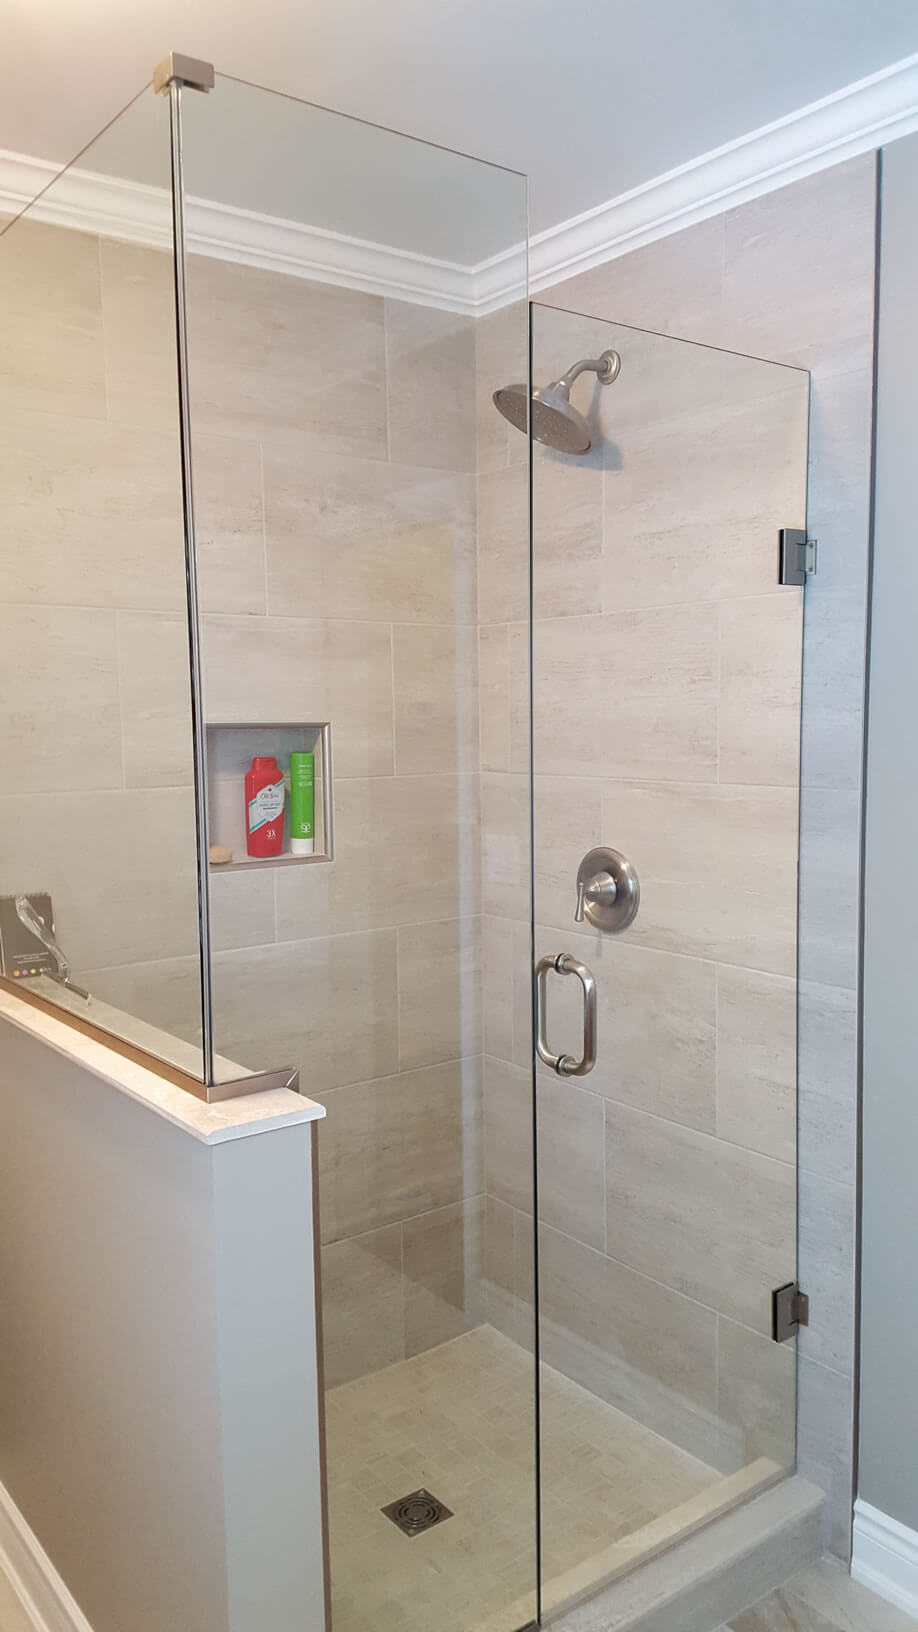 rochester syracuse installations gallery doors door ny residential shower flower glass